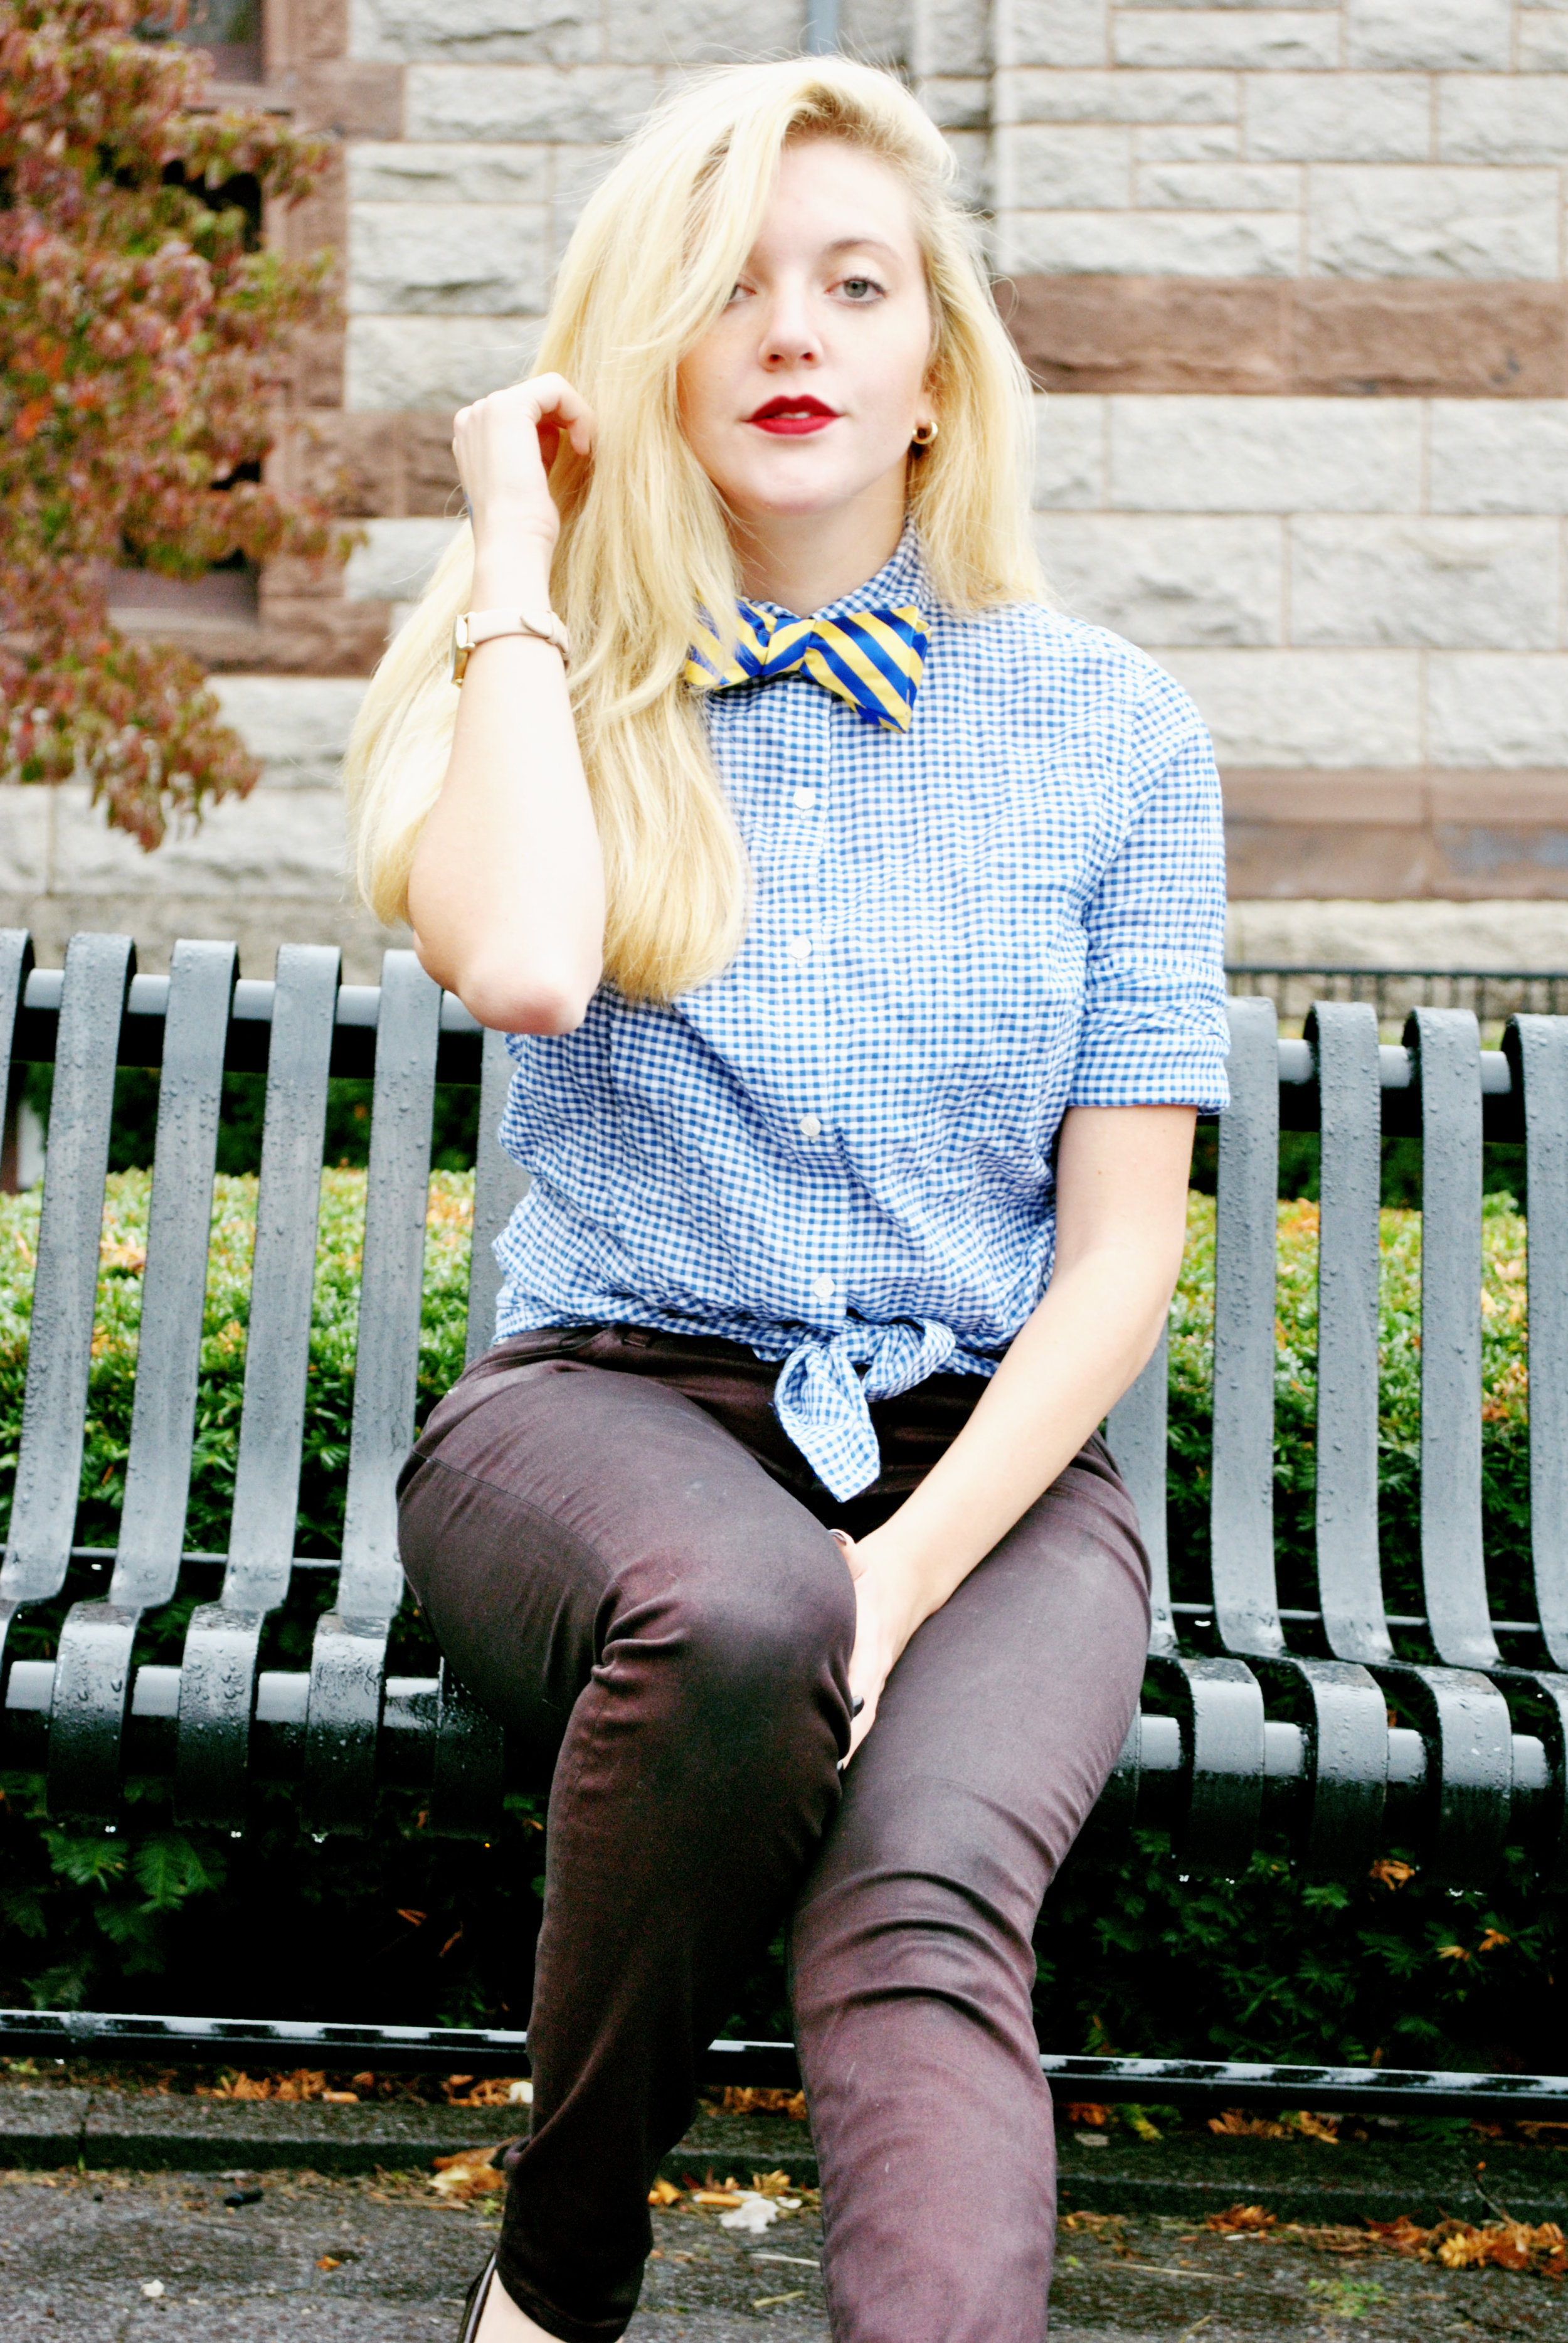 thoughtfulwish | oootie // boston strong // boston fashion // new england fashion // preppy // gingham // j.mclaughlin // bow tie // bowtie // fall outfit // meredith wish